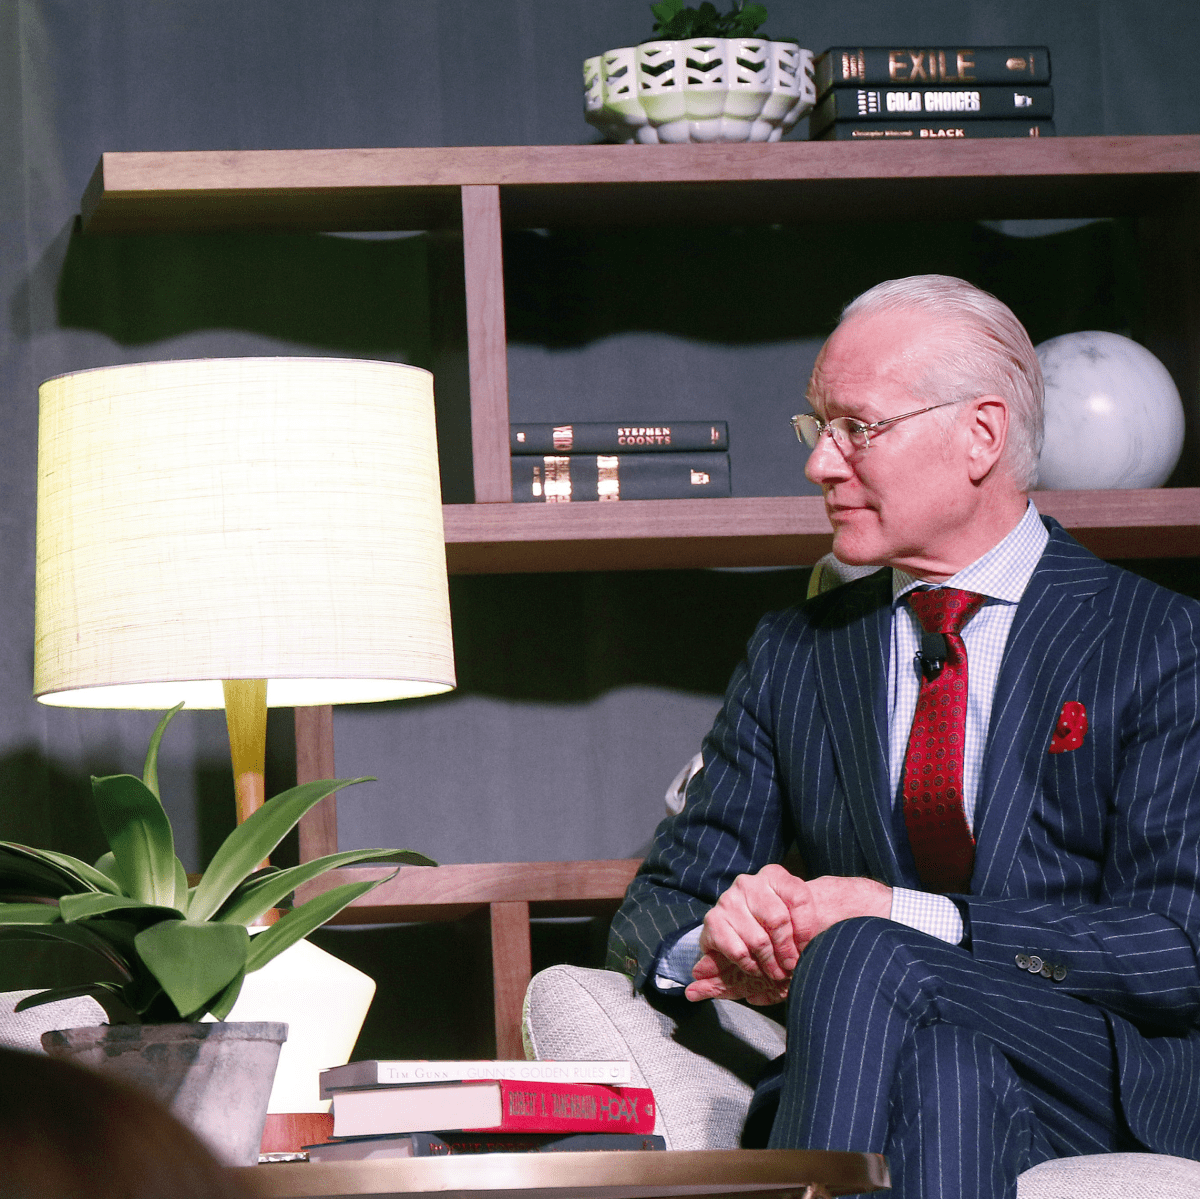 Kimberly Schlegel Whitman, Tim Gunn